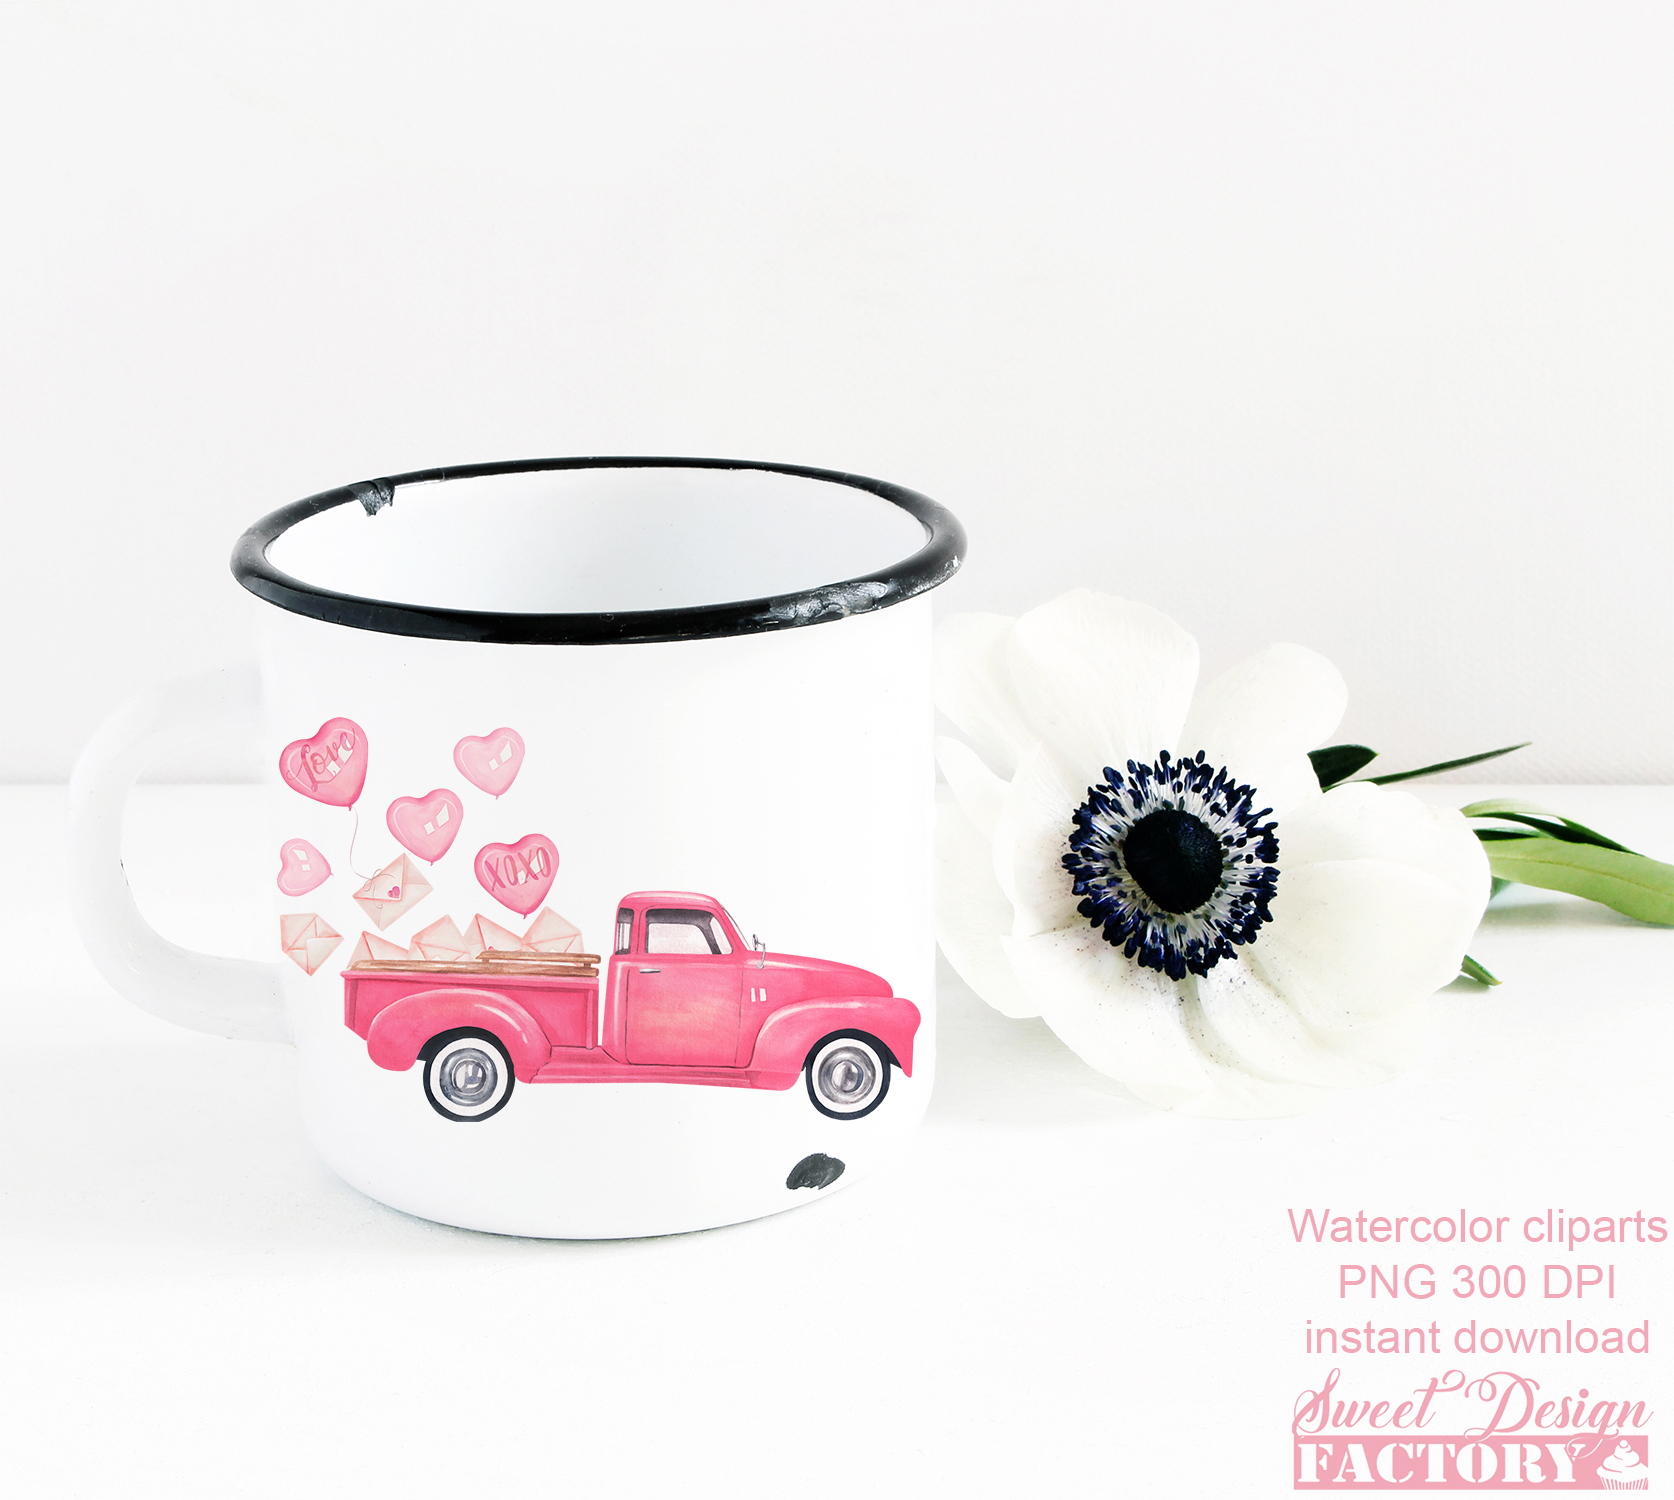 Valentine's day truck watercolor clipart example image 3